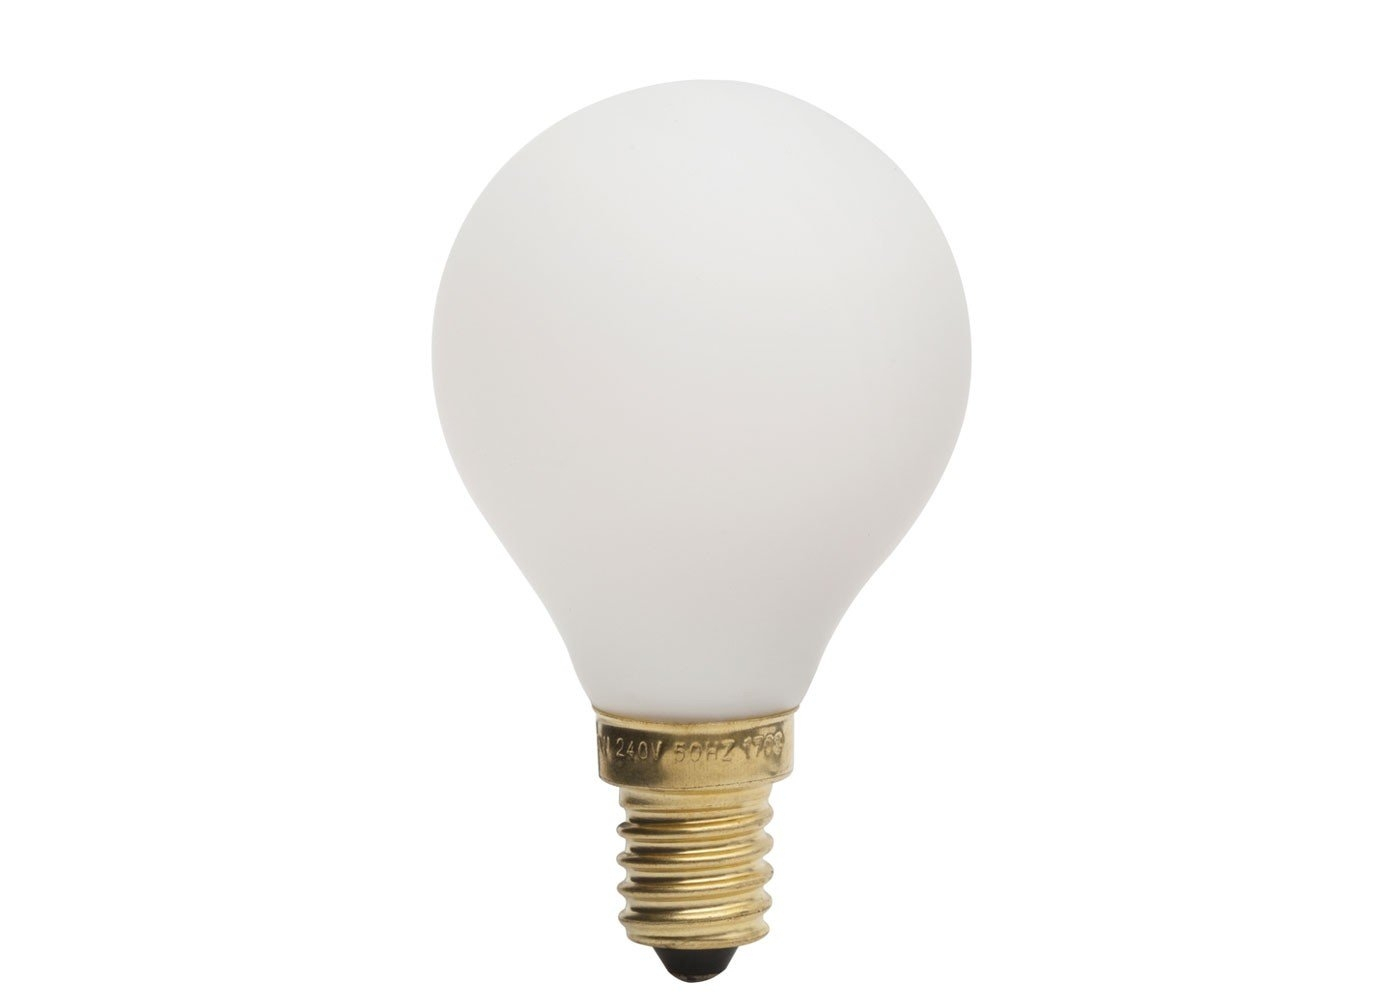 Ampoule Led Porcelain 3w - TALALED